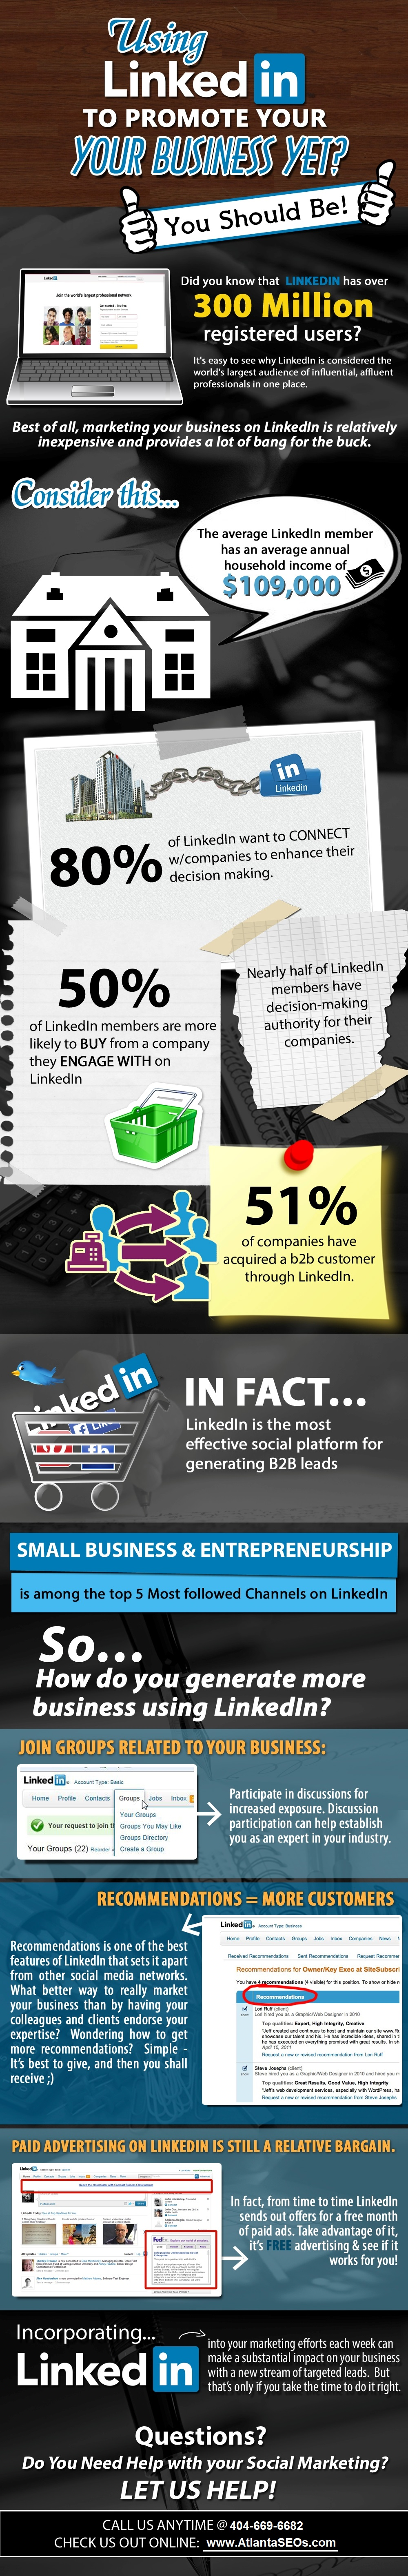 Infographic Are You Using LinkedIn to Promote Your Business Yet